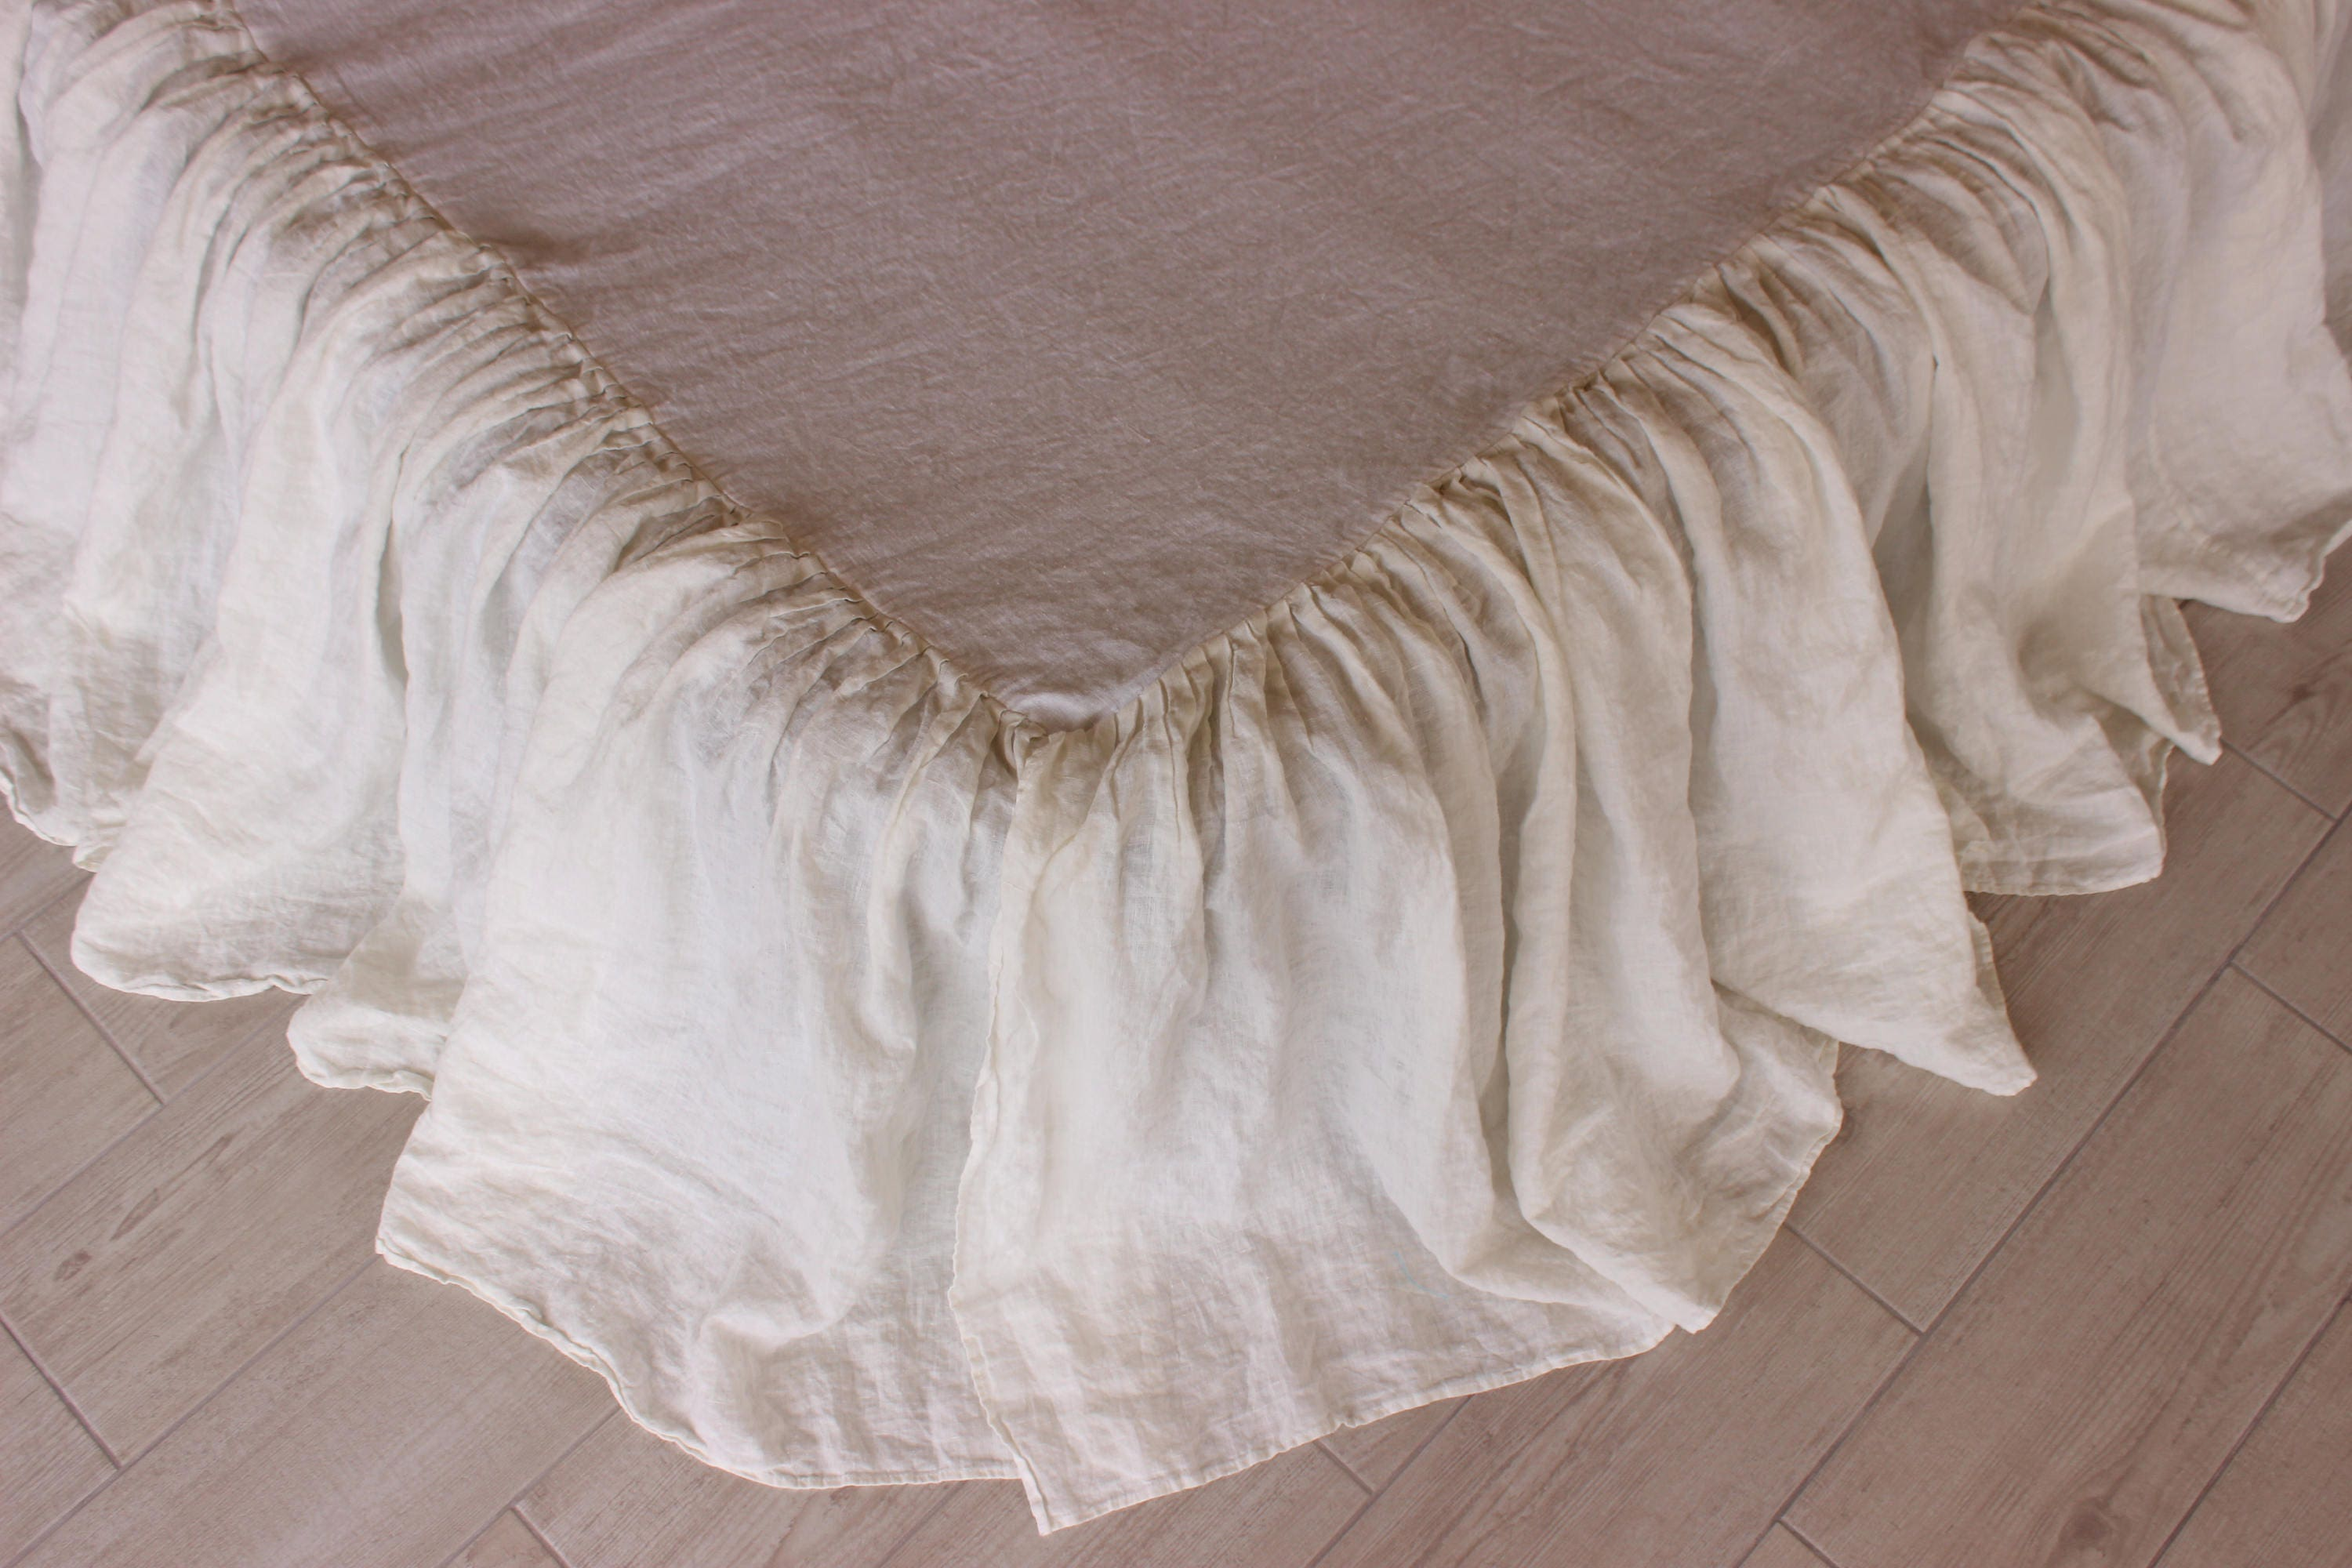 Linen Dust Ruffle Bedskirt 10 Colors Stone Washed Shabby Chic